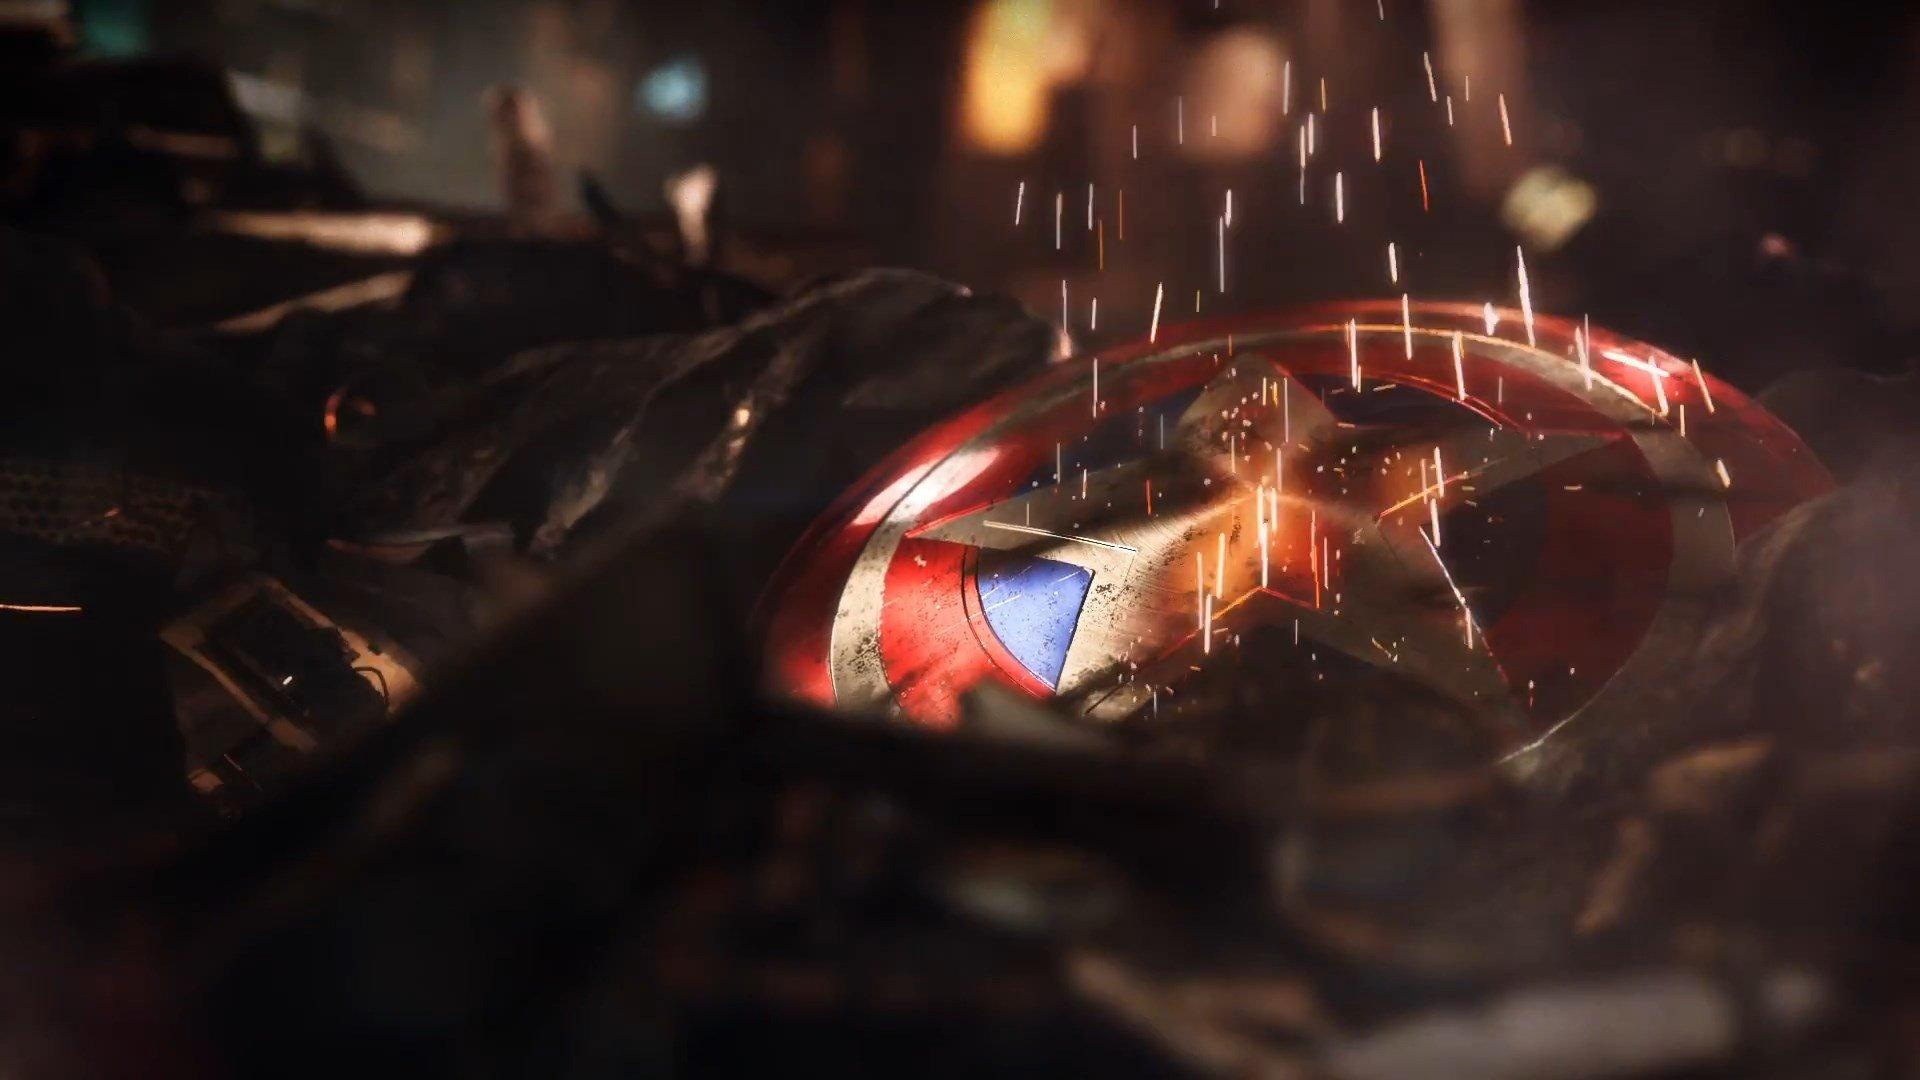 Is Square Enix Teasing Its Avengers Game for E3 2019?